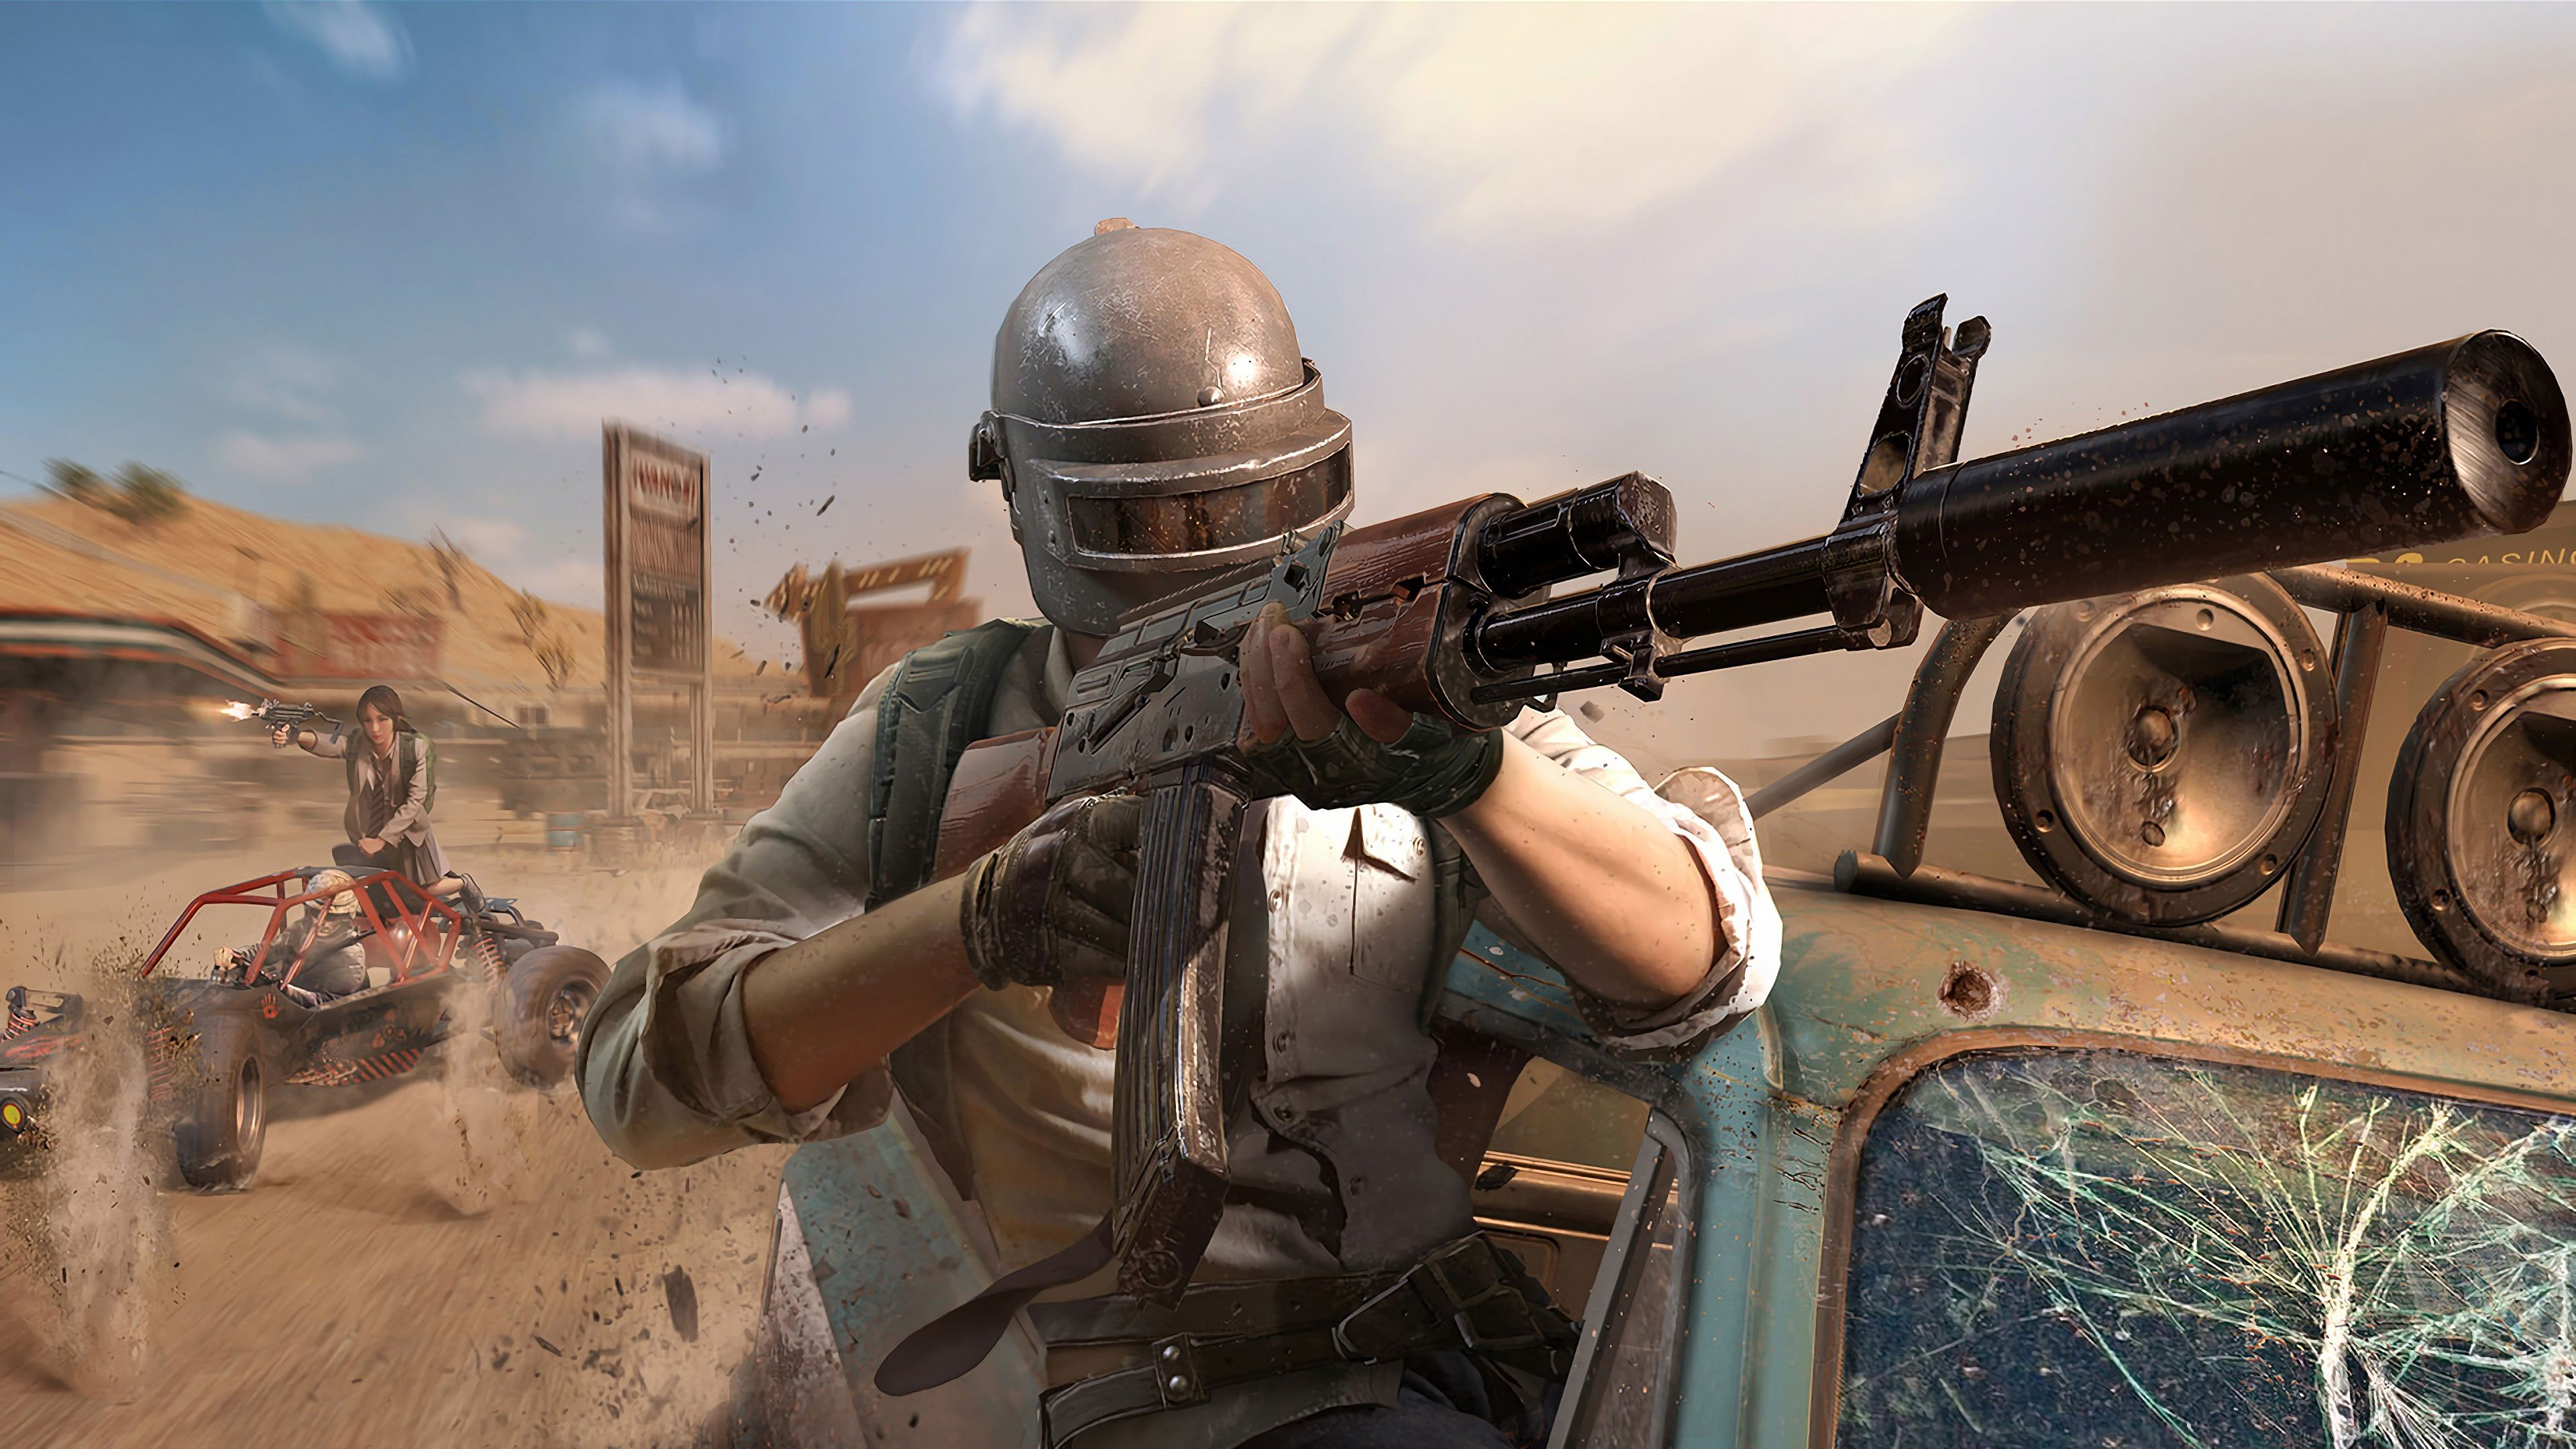 Pubg Hd Wallpapers Top Free Pubg Hd Backgrounds